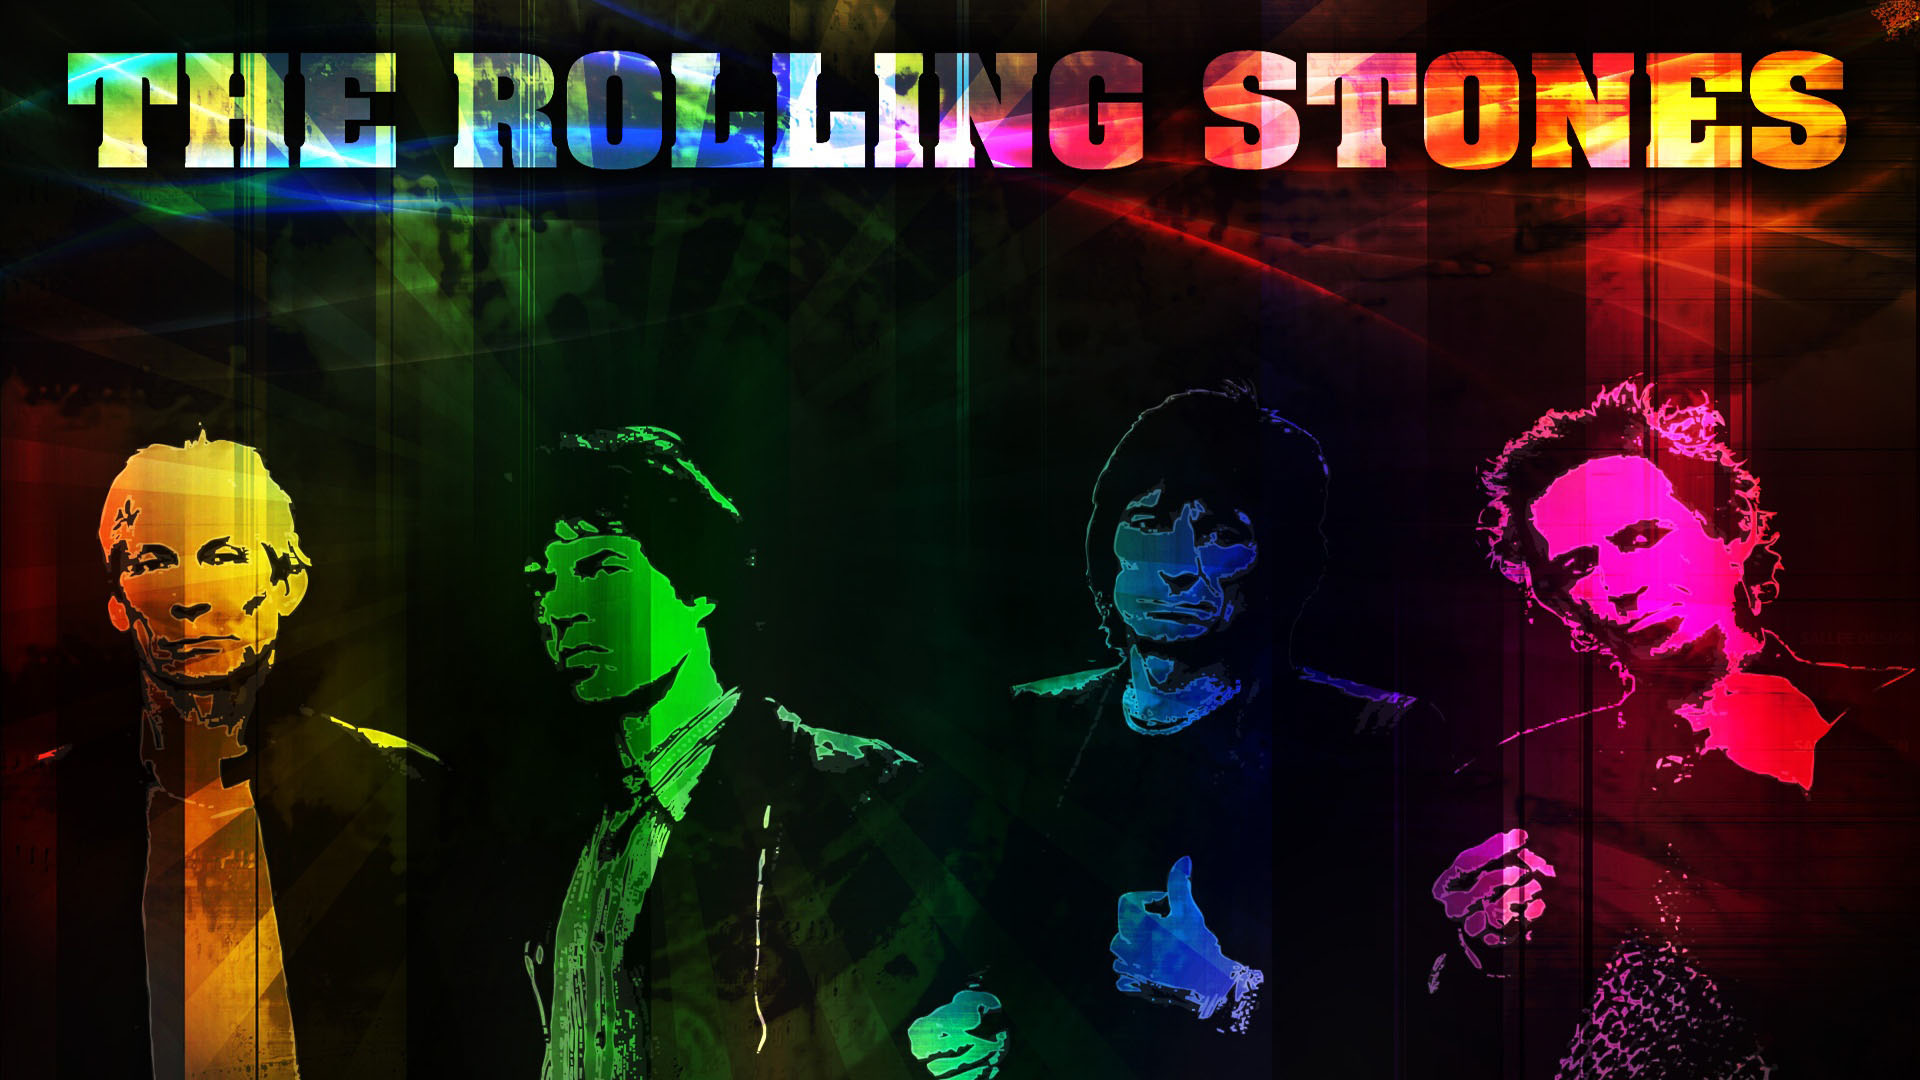 Music - The Rolling Stones  Wallpaper